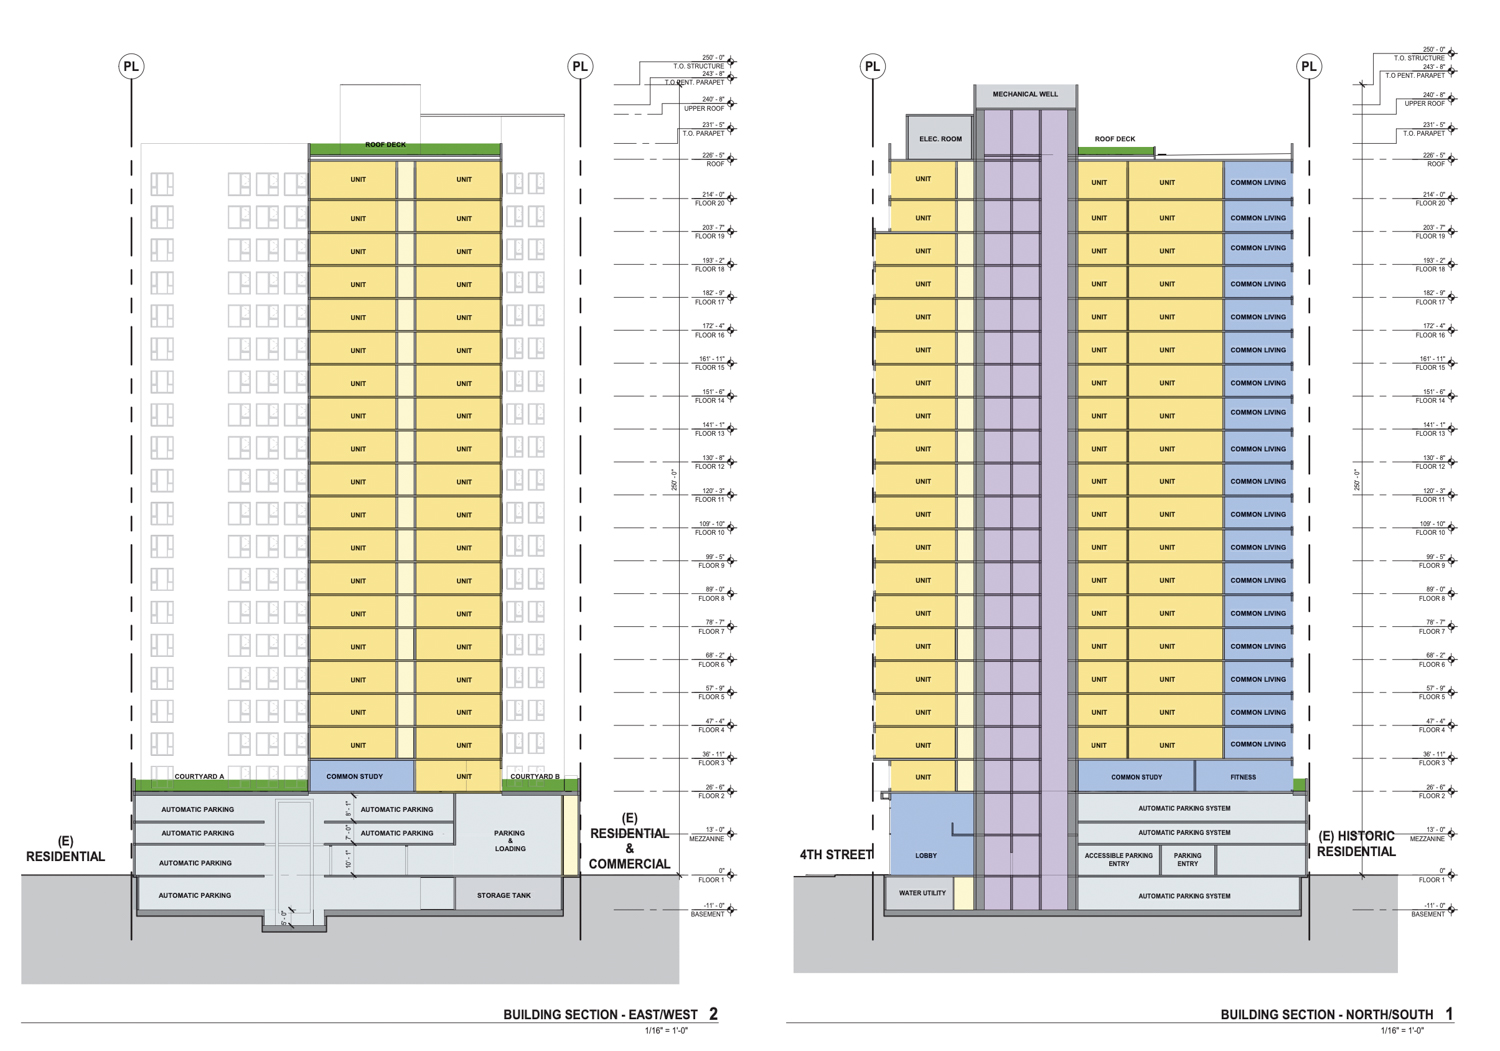 475 South 4th Street north-south and east-west building section elevations, drawing by BDE Architecture